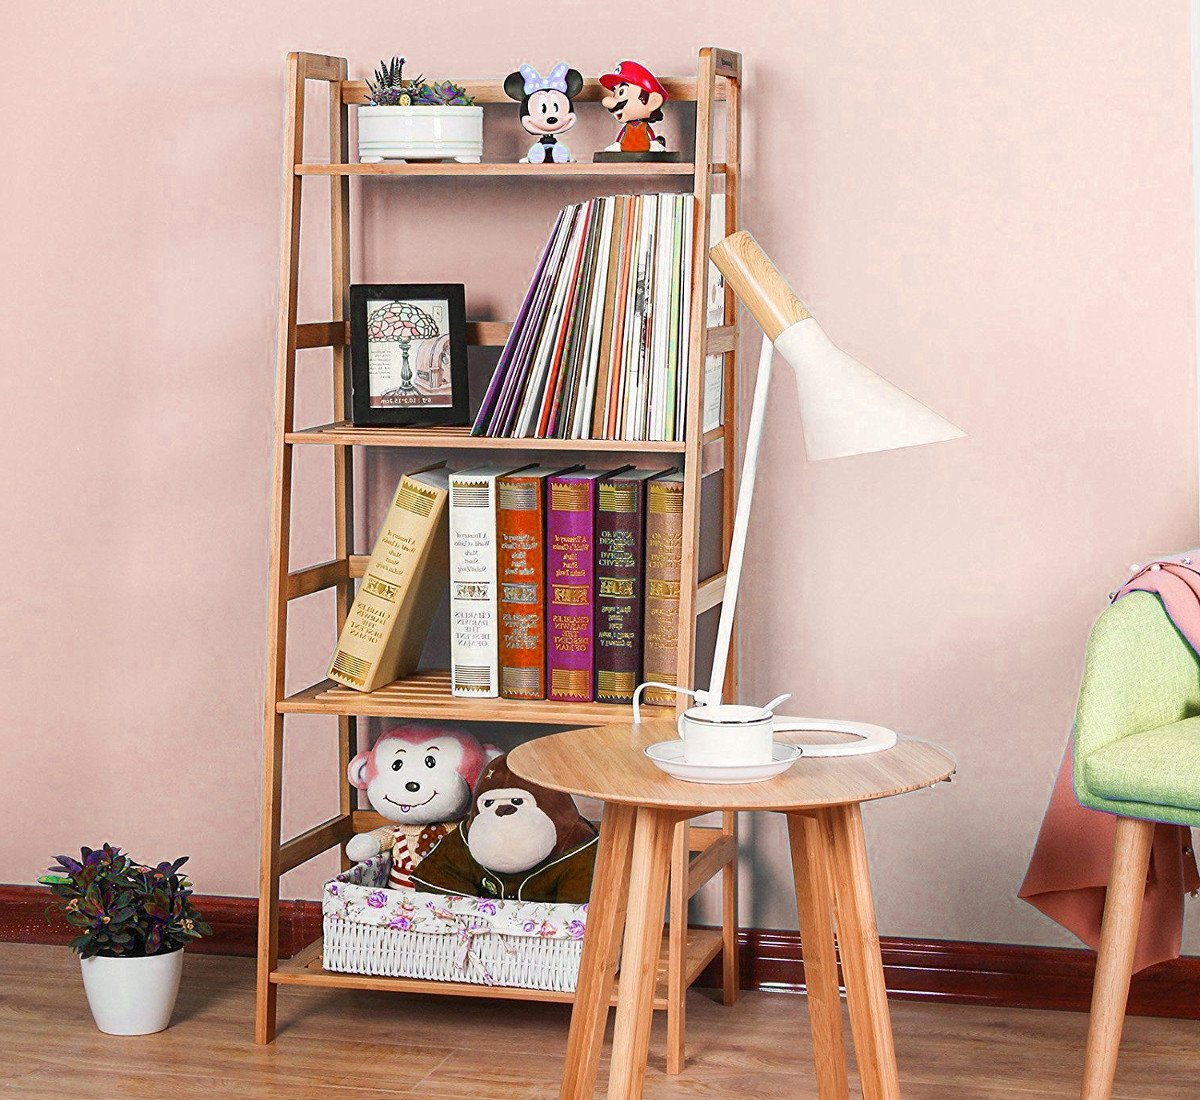 outlet store 80c1e 0def6 Amazon.com: GT Etagere Bookcase Tall Ladder Shelf Furniture ...